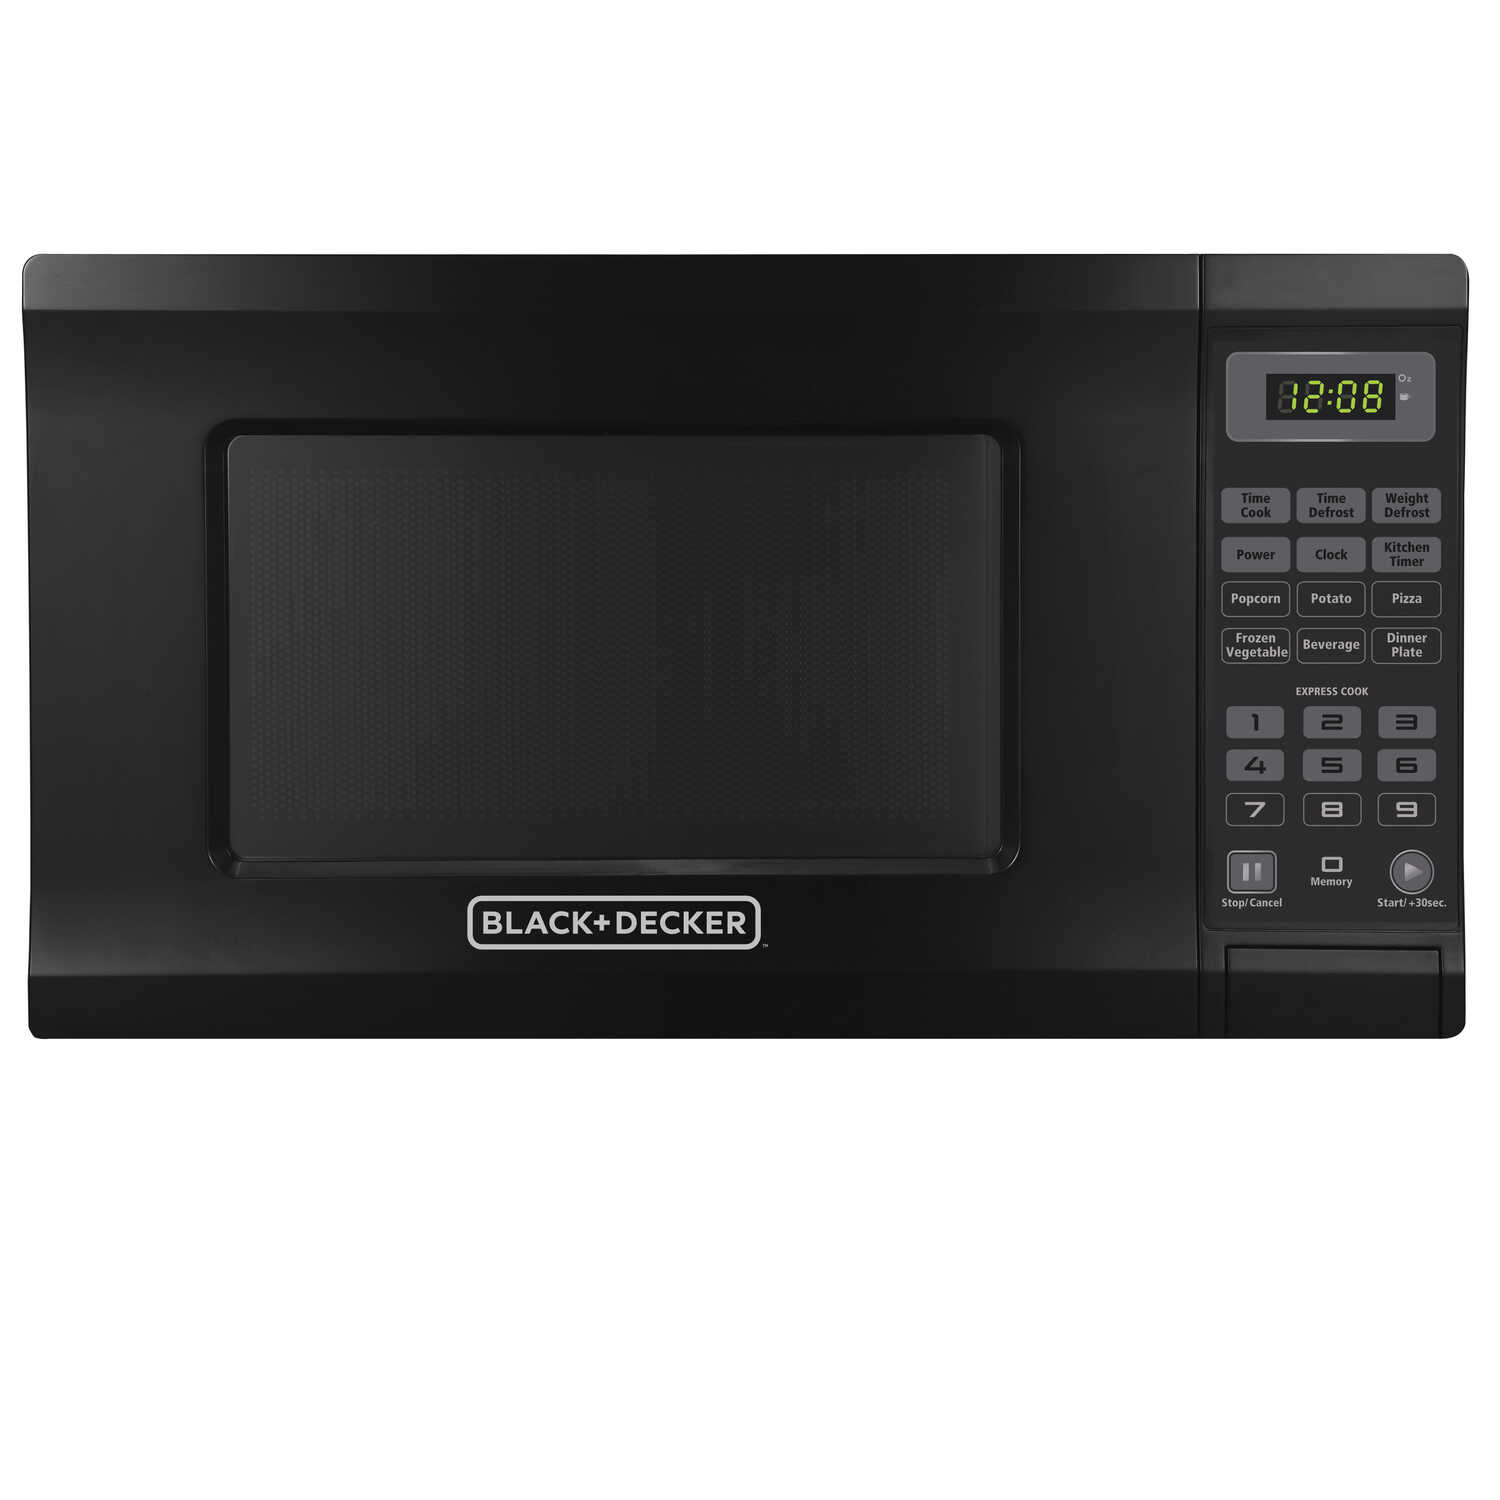 Black and Decker  0.7 cu. ft. Microwave  700  Black